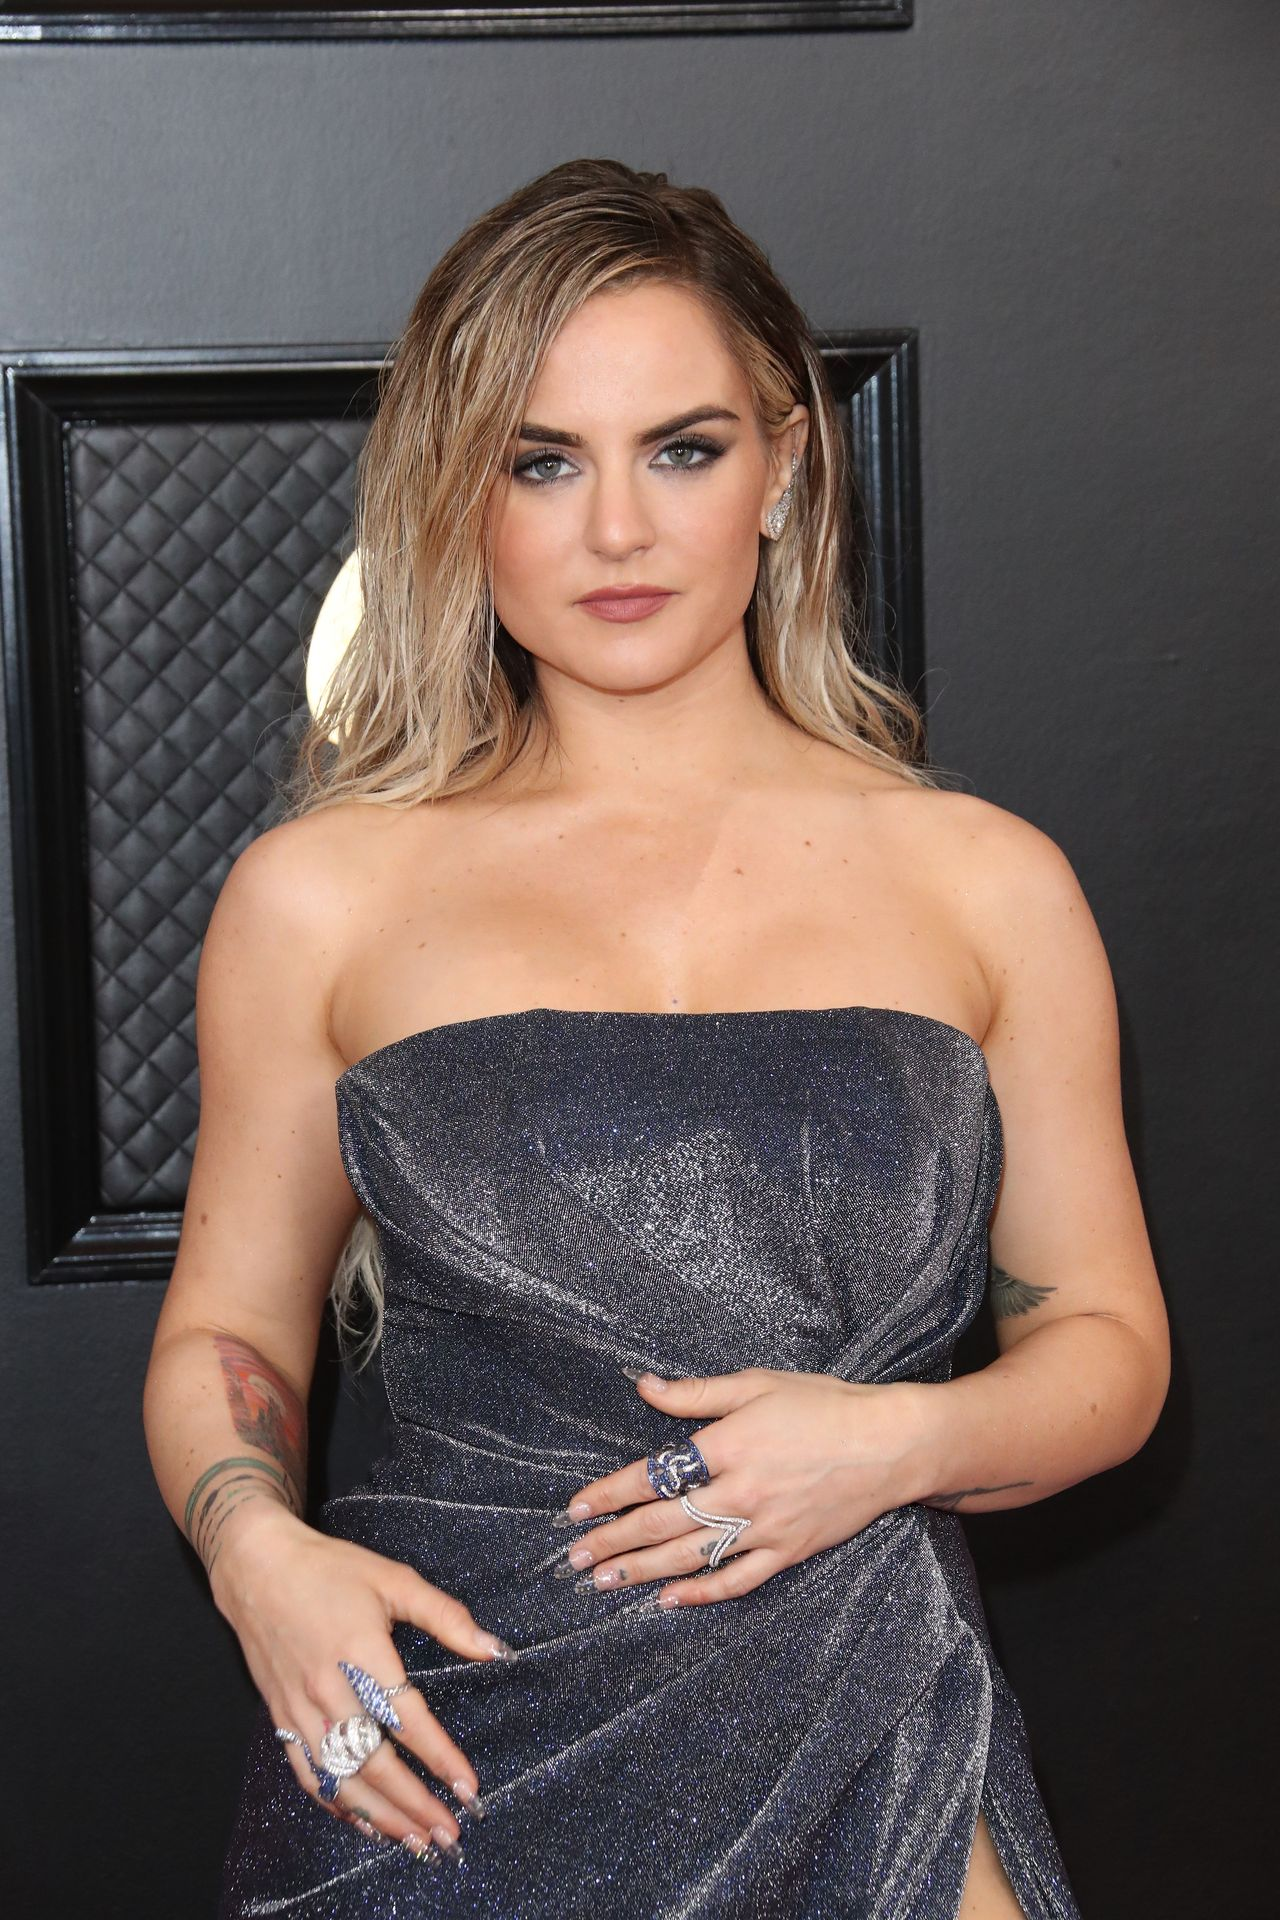 Jojo Shows Her Legs And Cleavage At The 62nd Annual Grammy Awards 0007